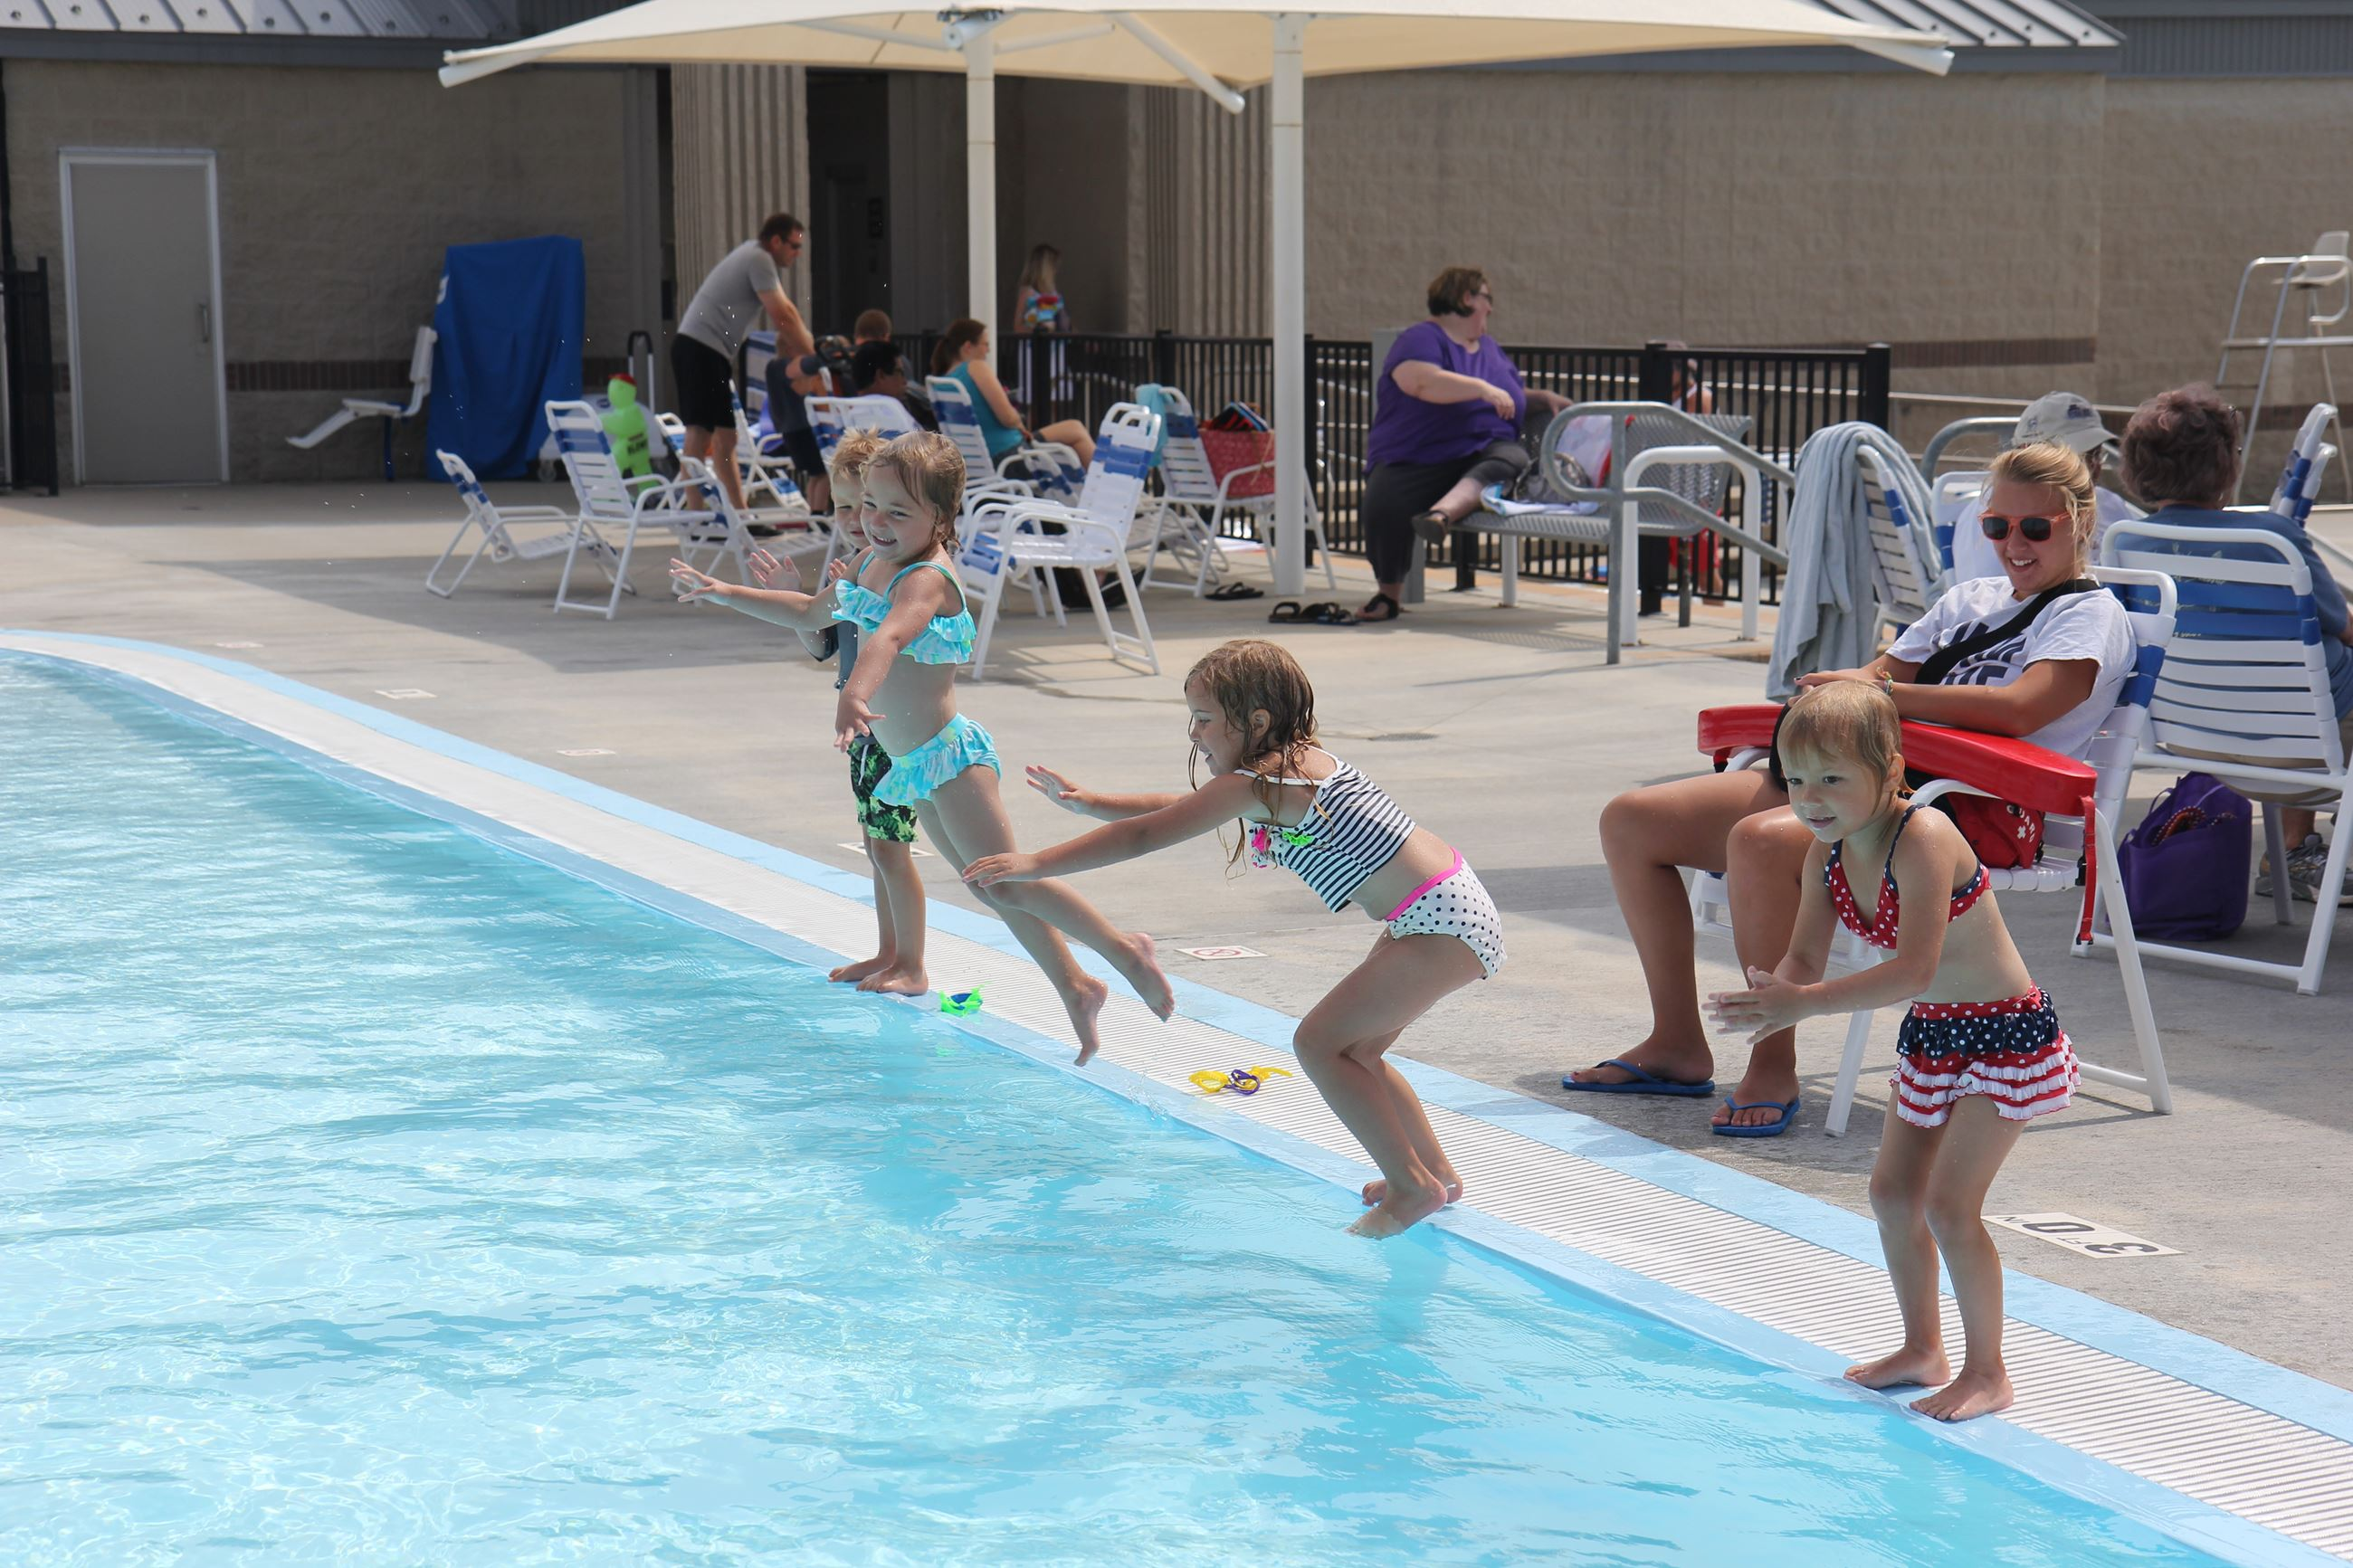 Young children playing at a city pool